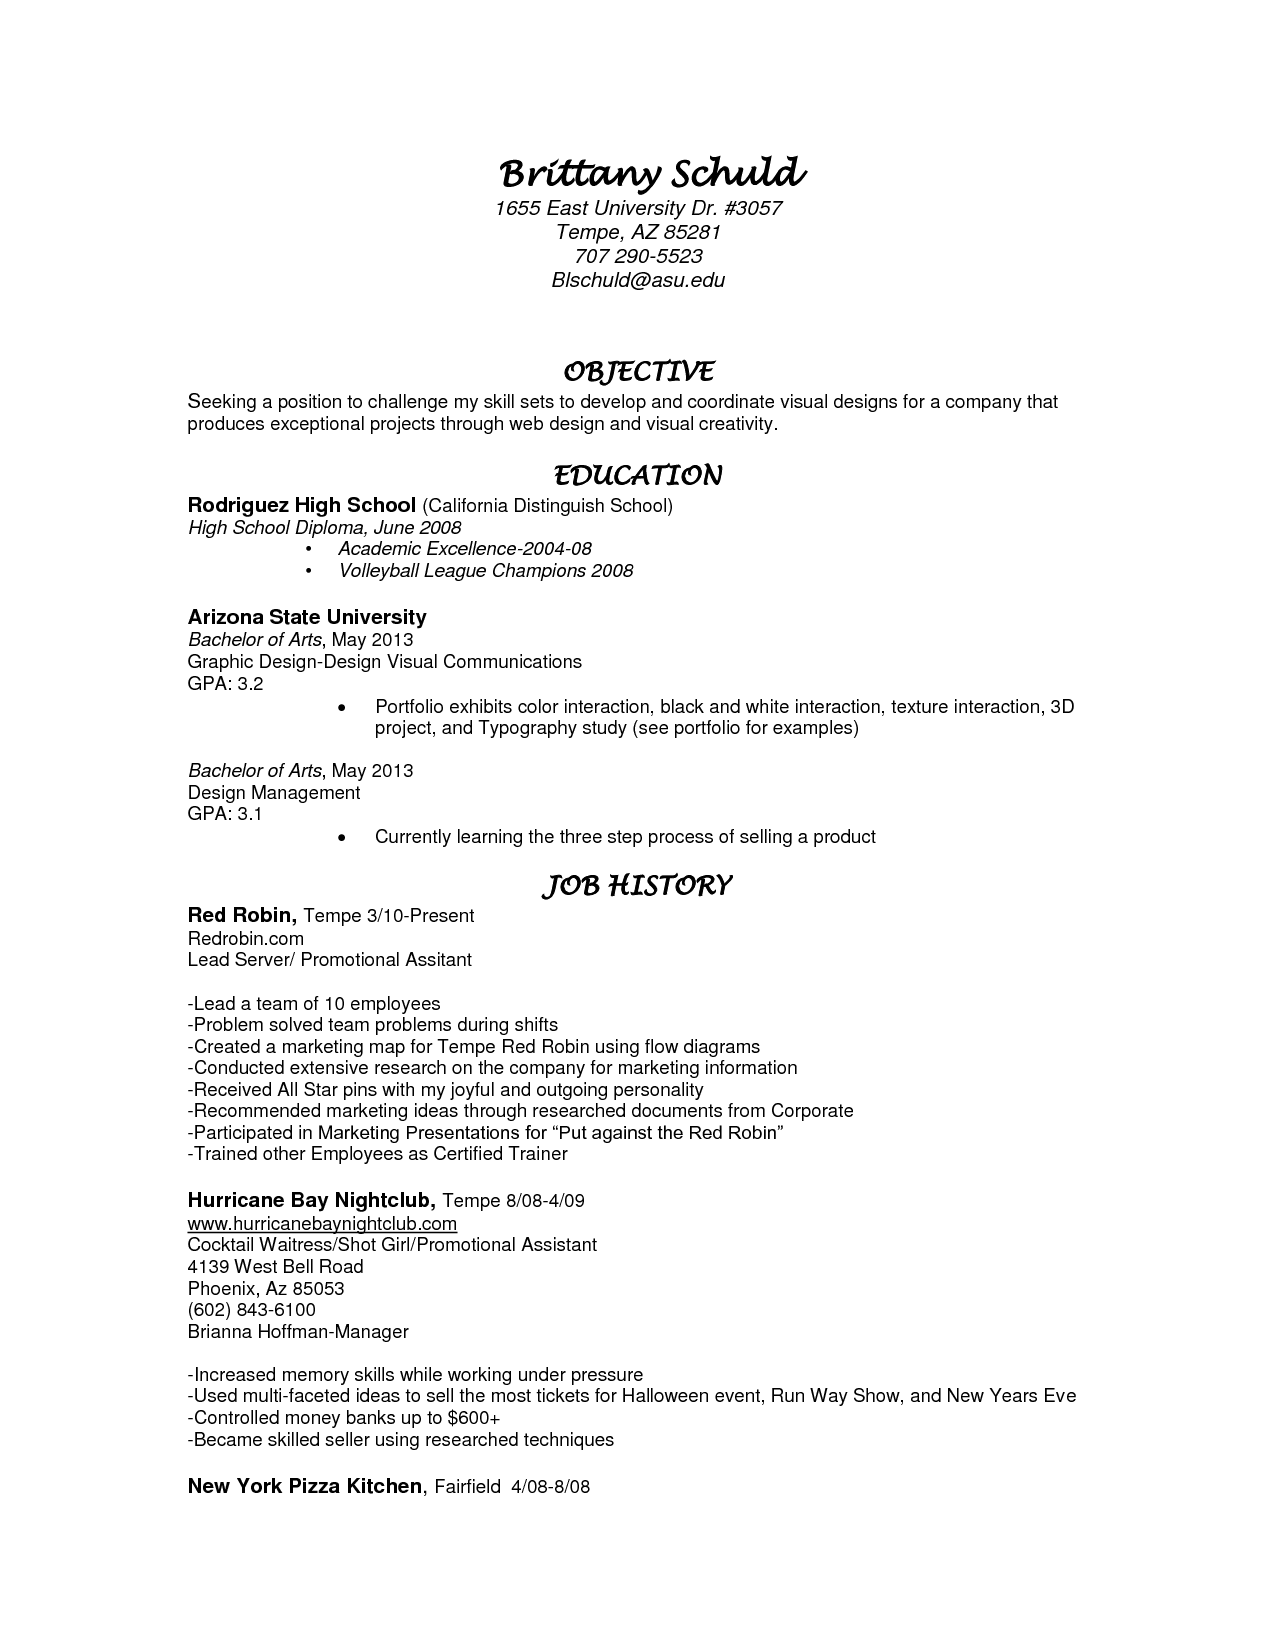 Resume For Hairstylist Cover Letter Examples Waitress Well Written Essay Waiter For